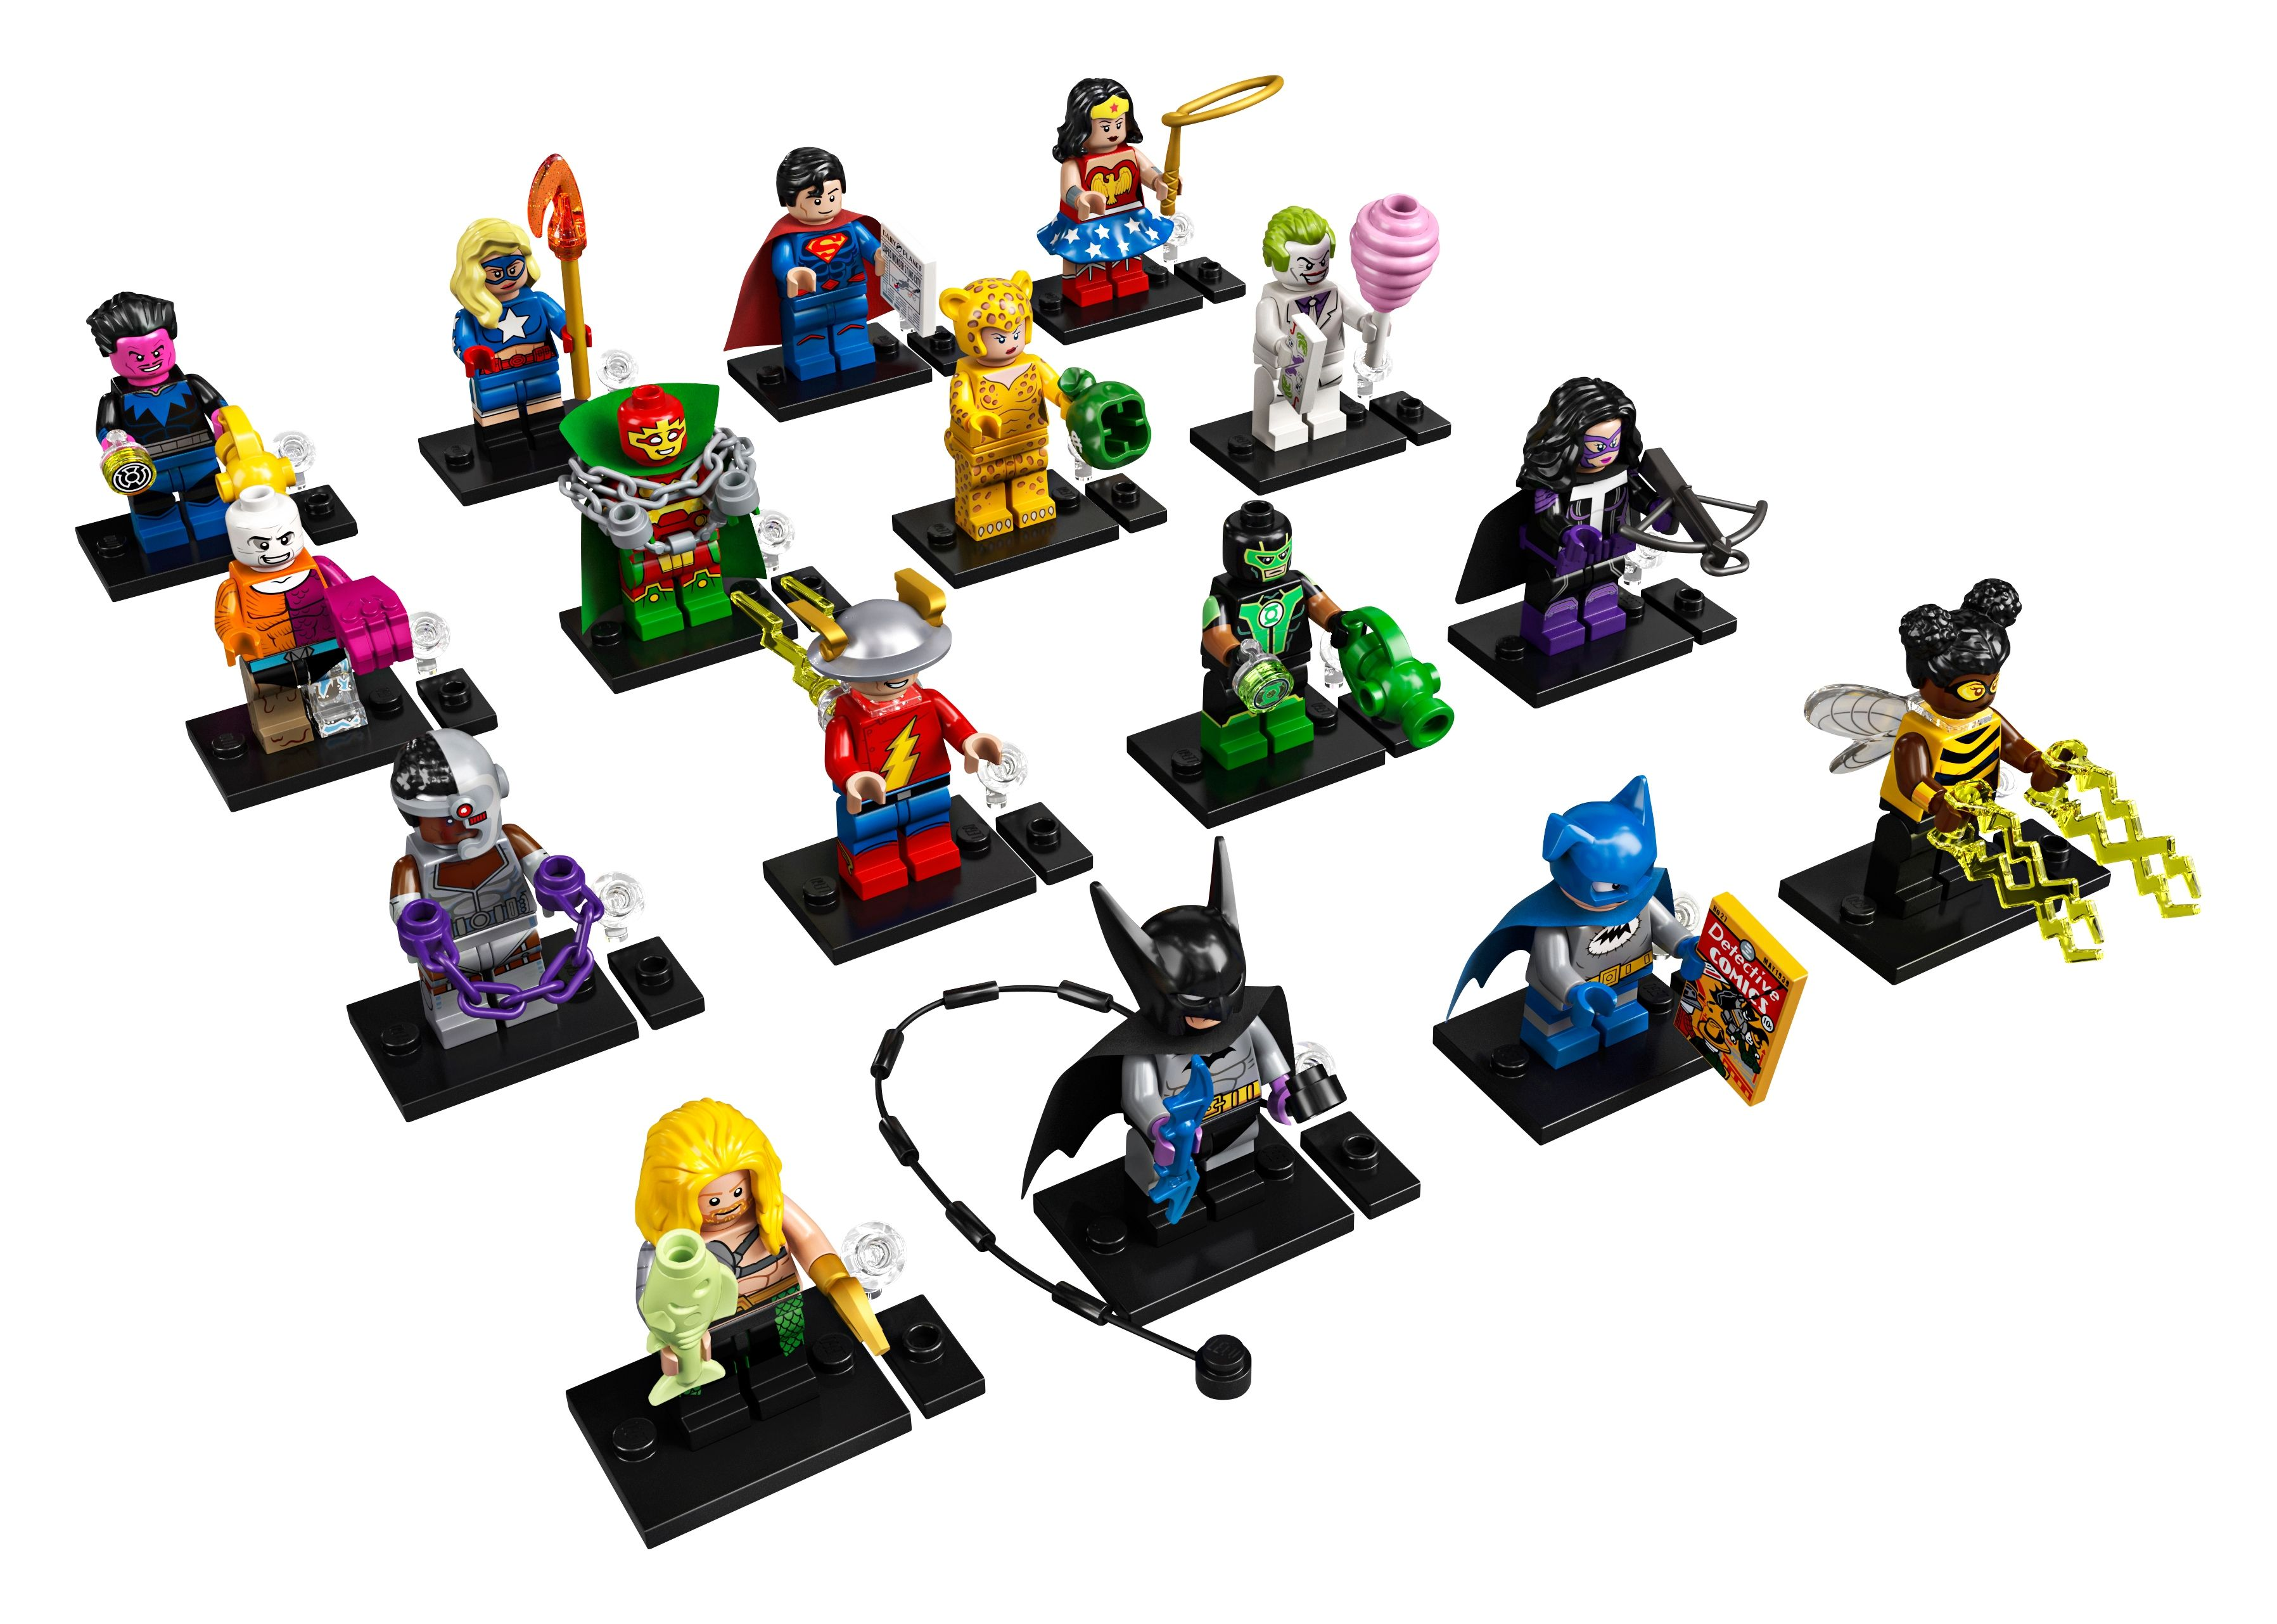 LEGO Collectable Minifigures 66638 LEGO® DC Super Heroes Series 71026 - 60er Box LEGO_66638_alt1.jpg